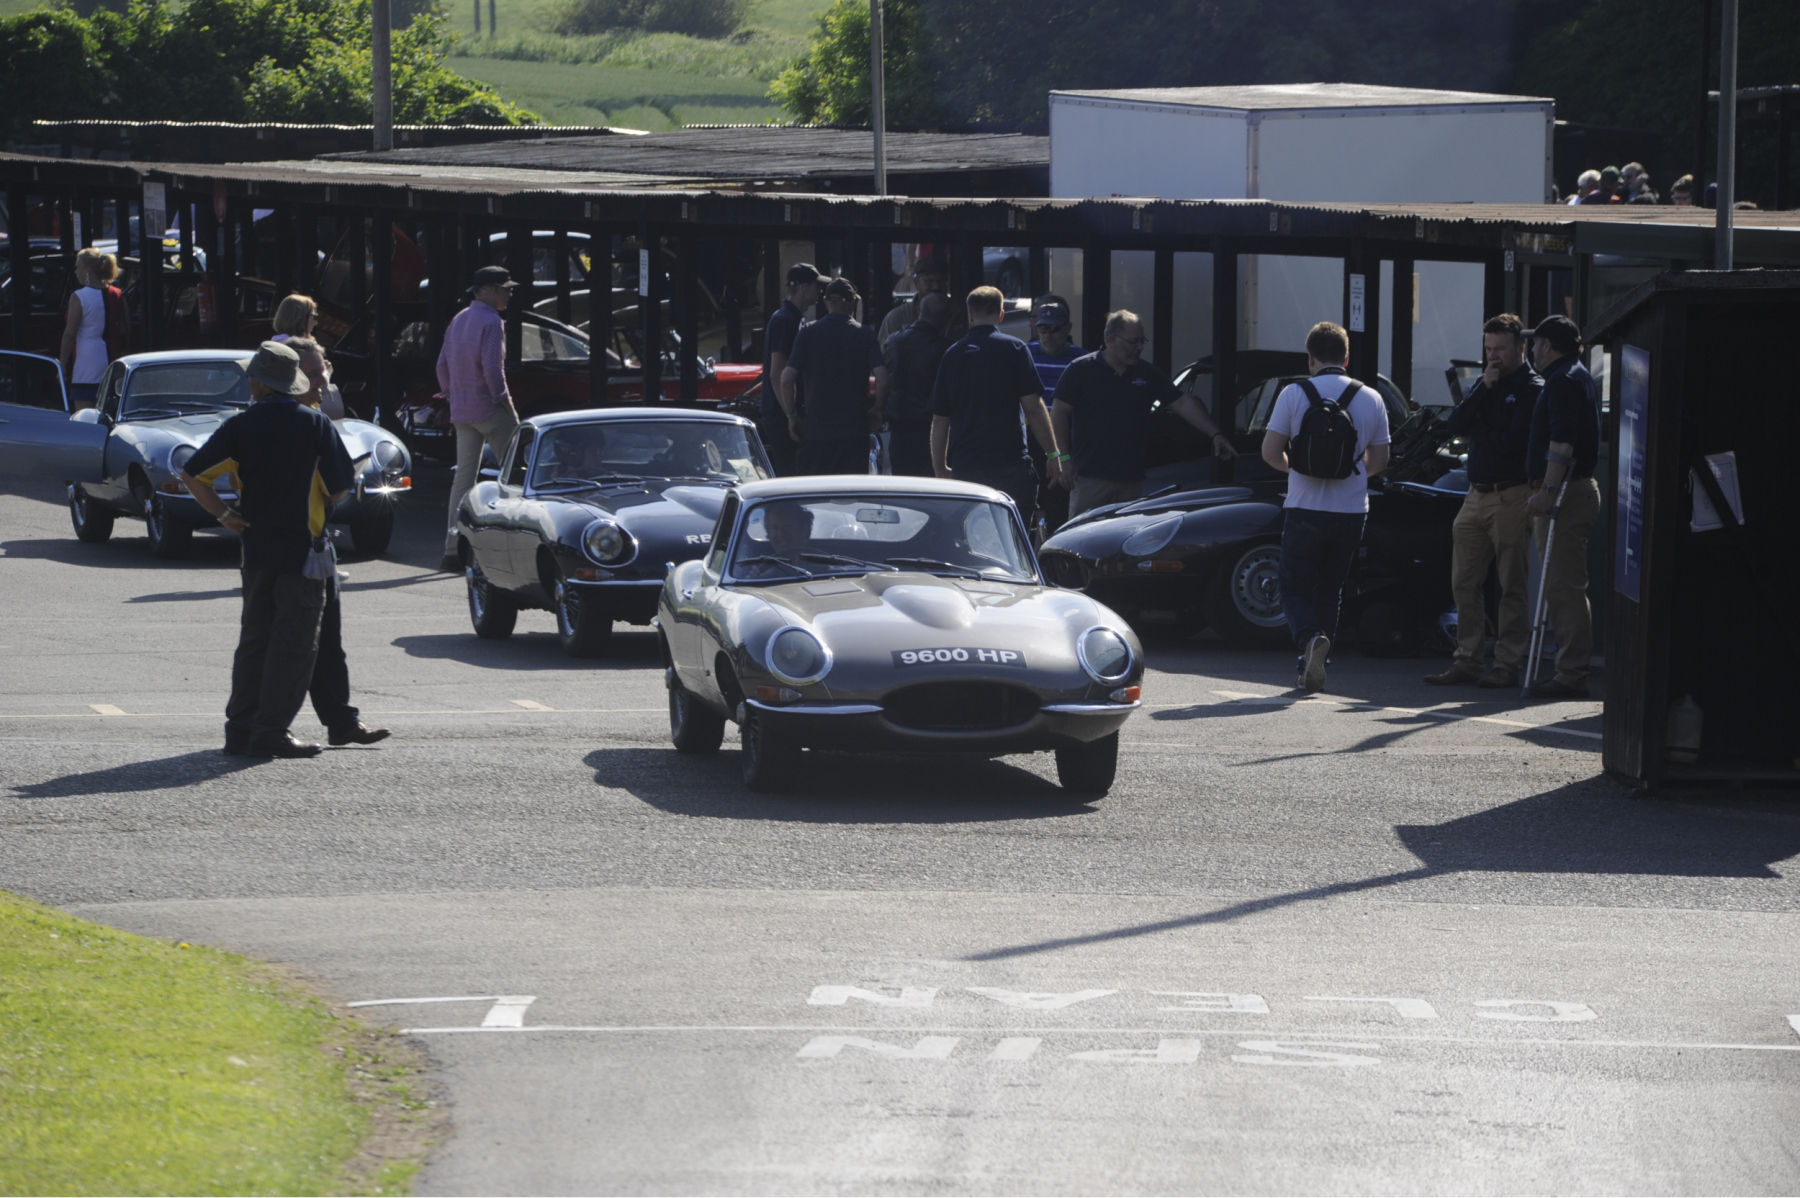 E-type-60-Saturday-photo-by-Abigail-Humphries-5